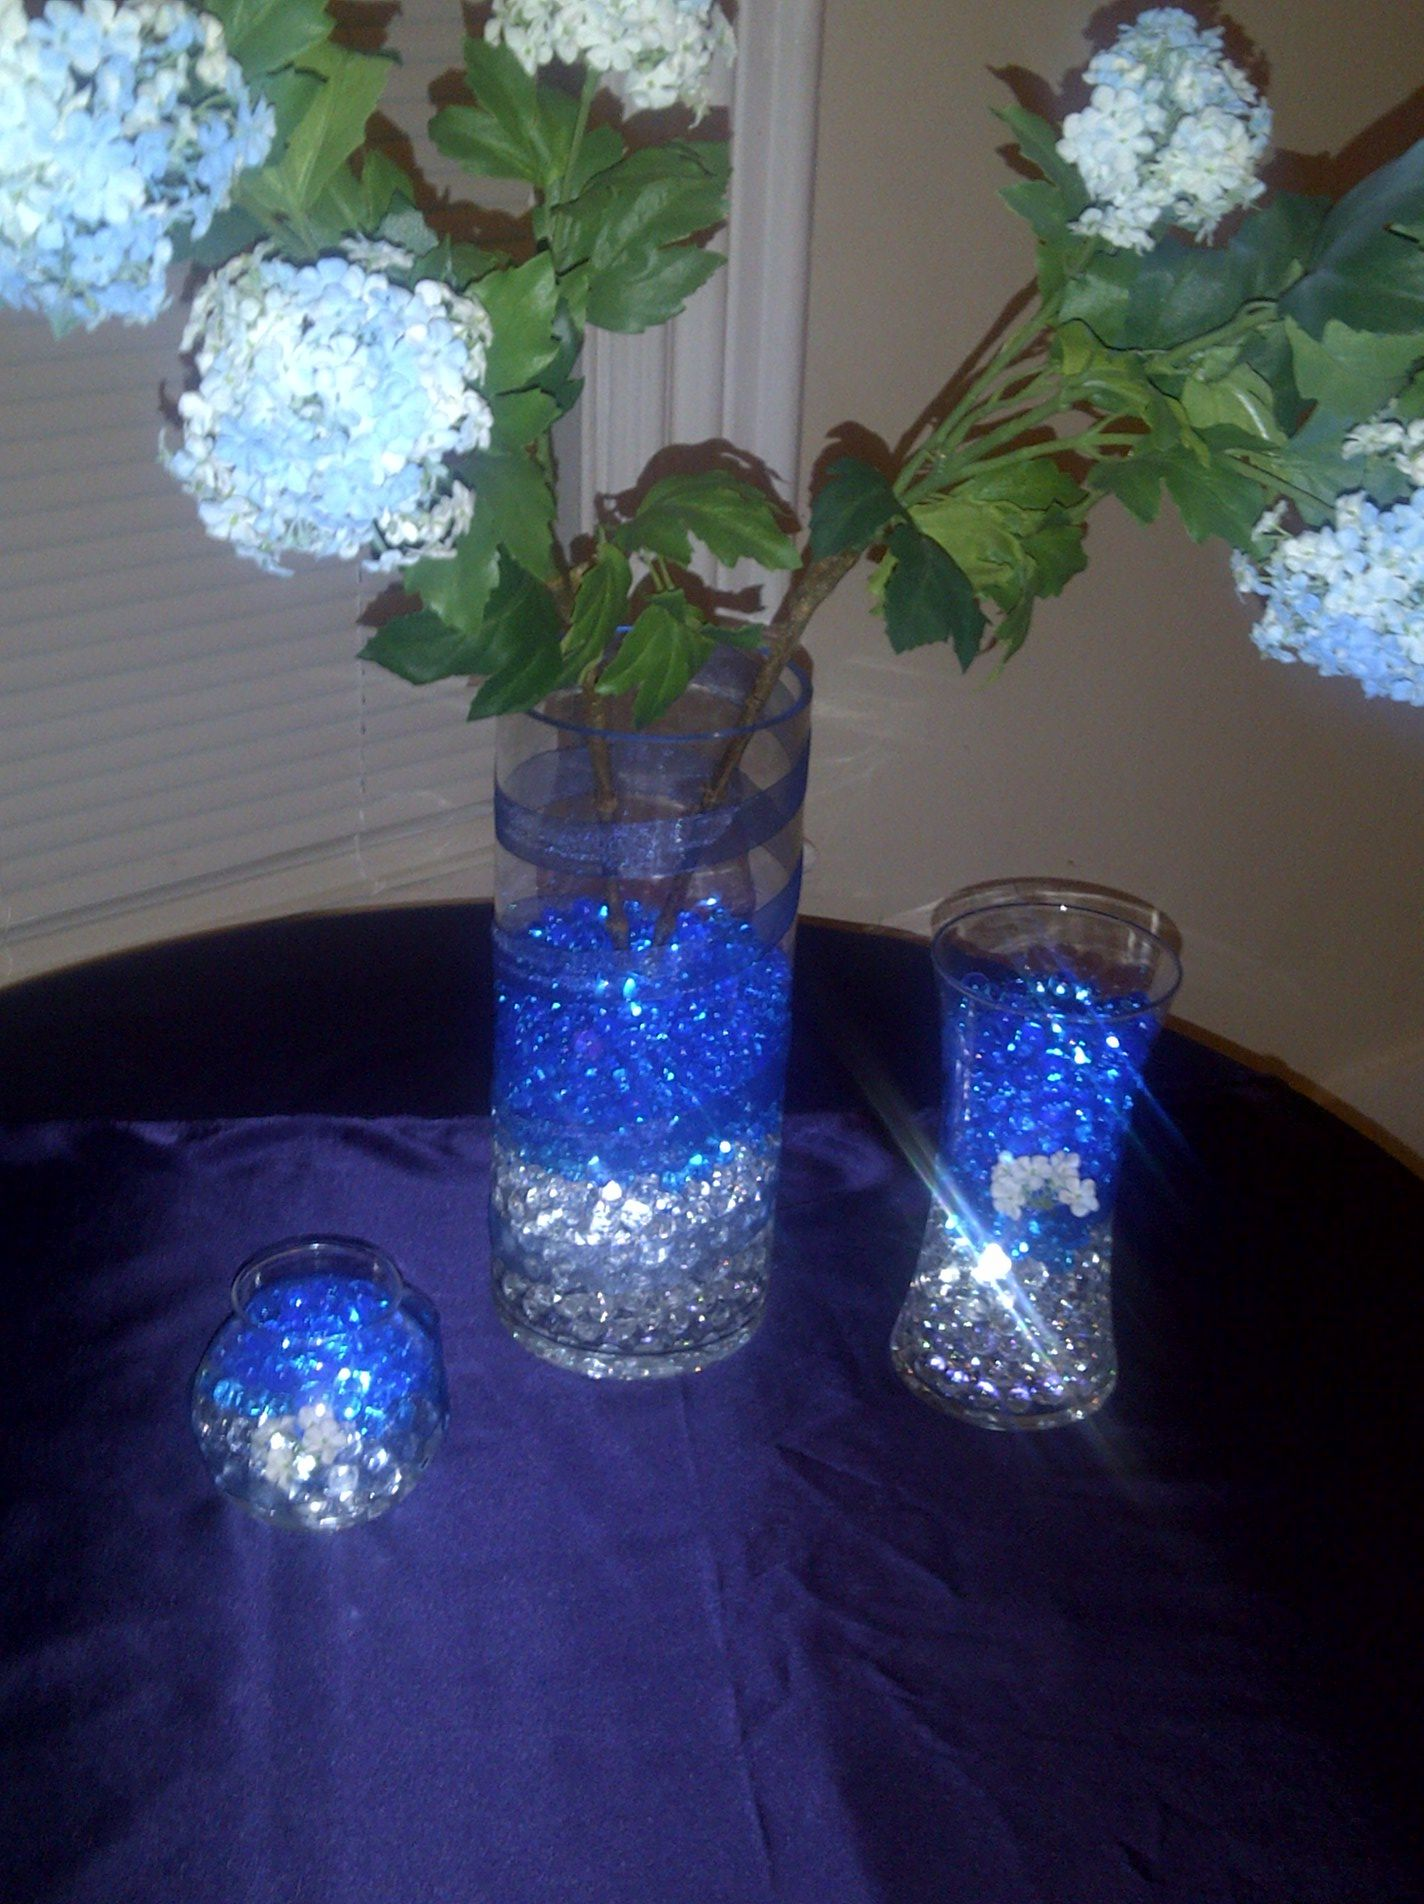 Pin by june moore on wedding ideas pinterest - Blue and white centerpieces ...